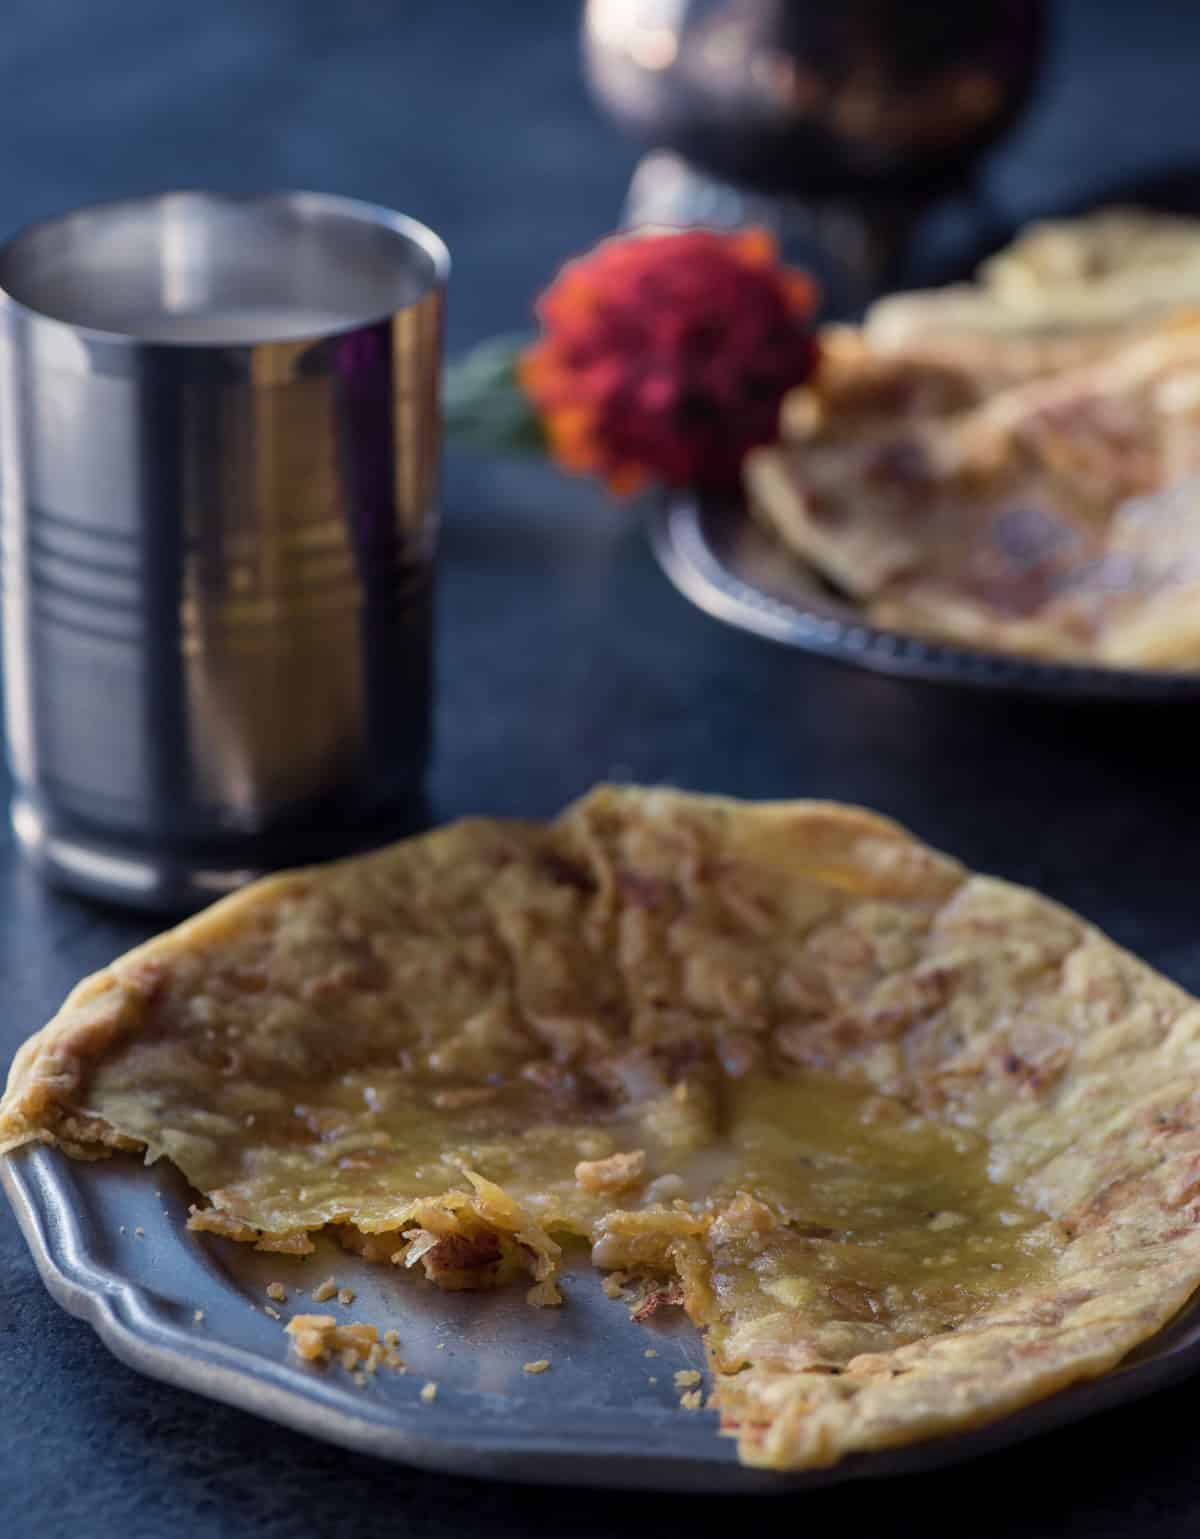 Nothing is more heavenly than a bite of this flaky melt-in-the-mouth Puran poli